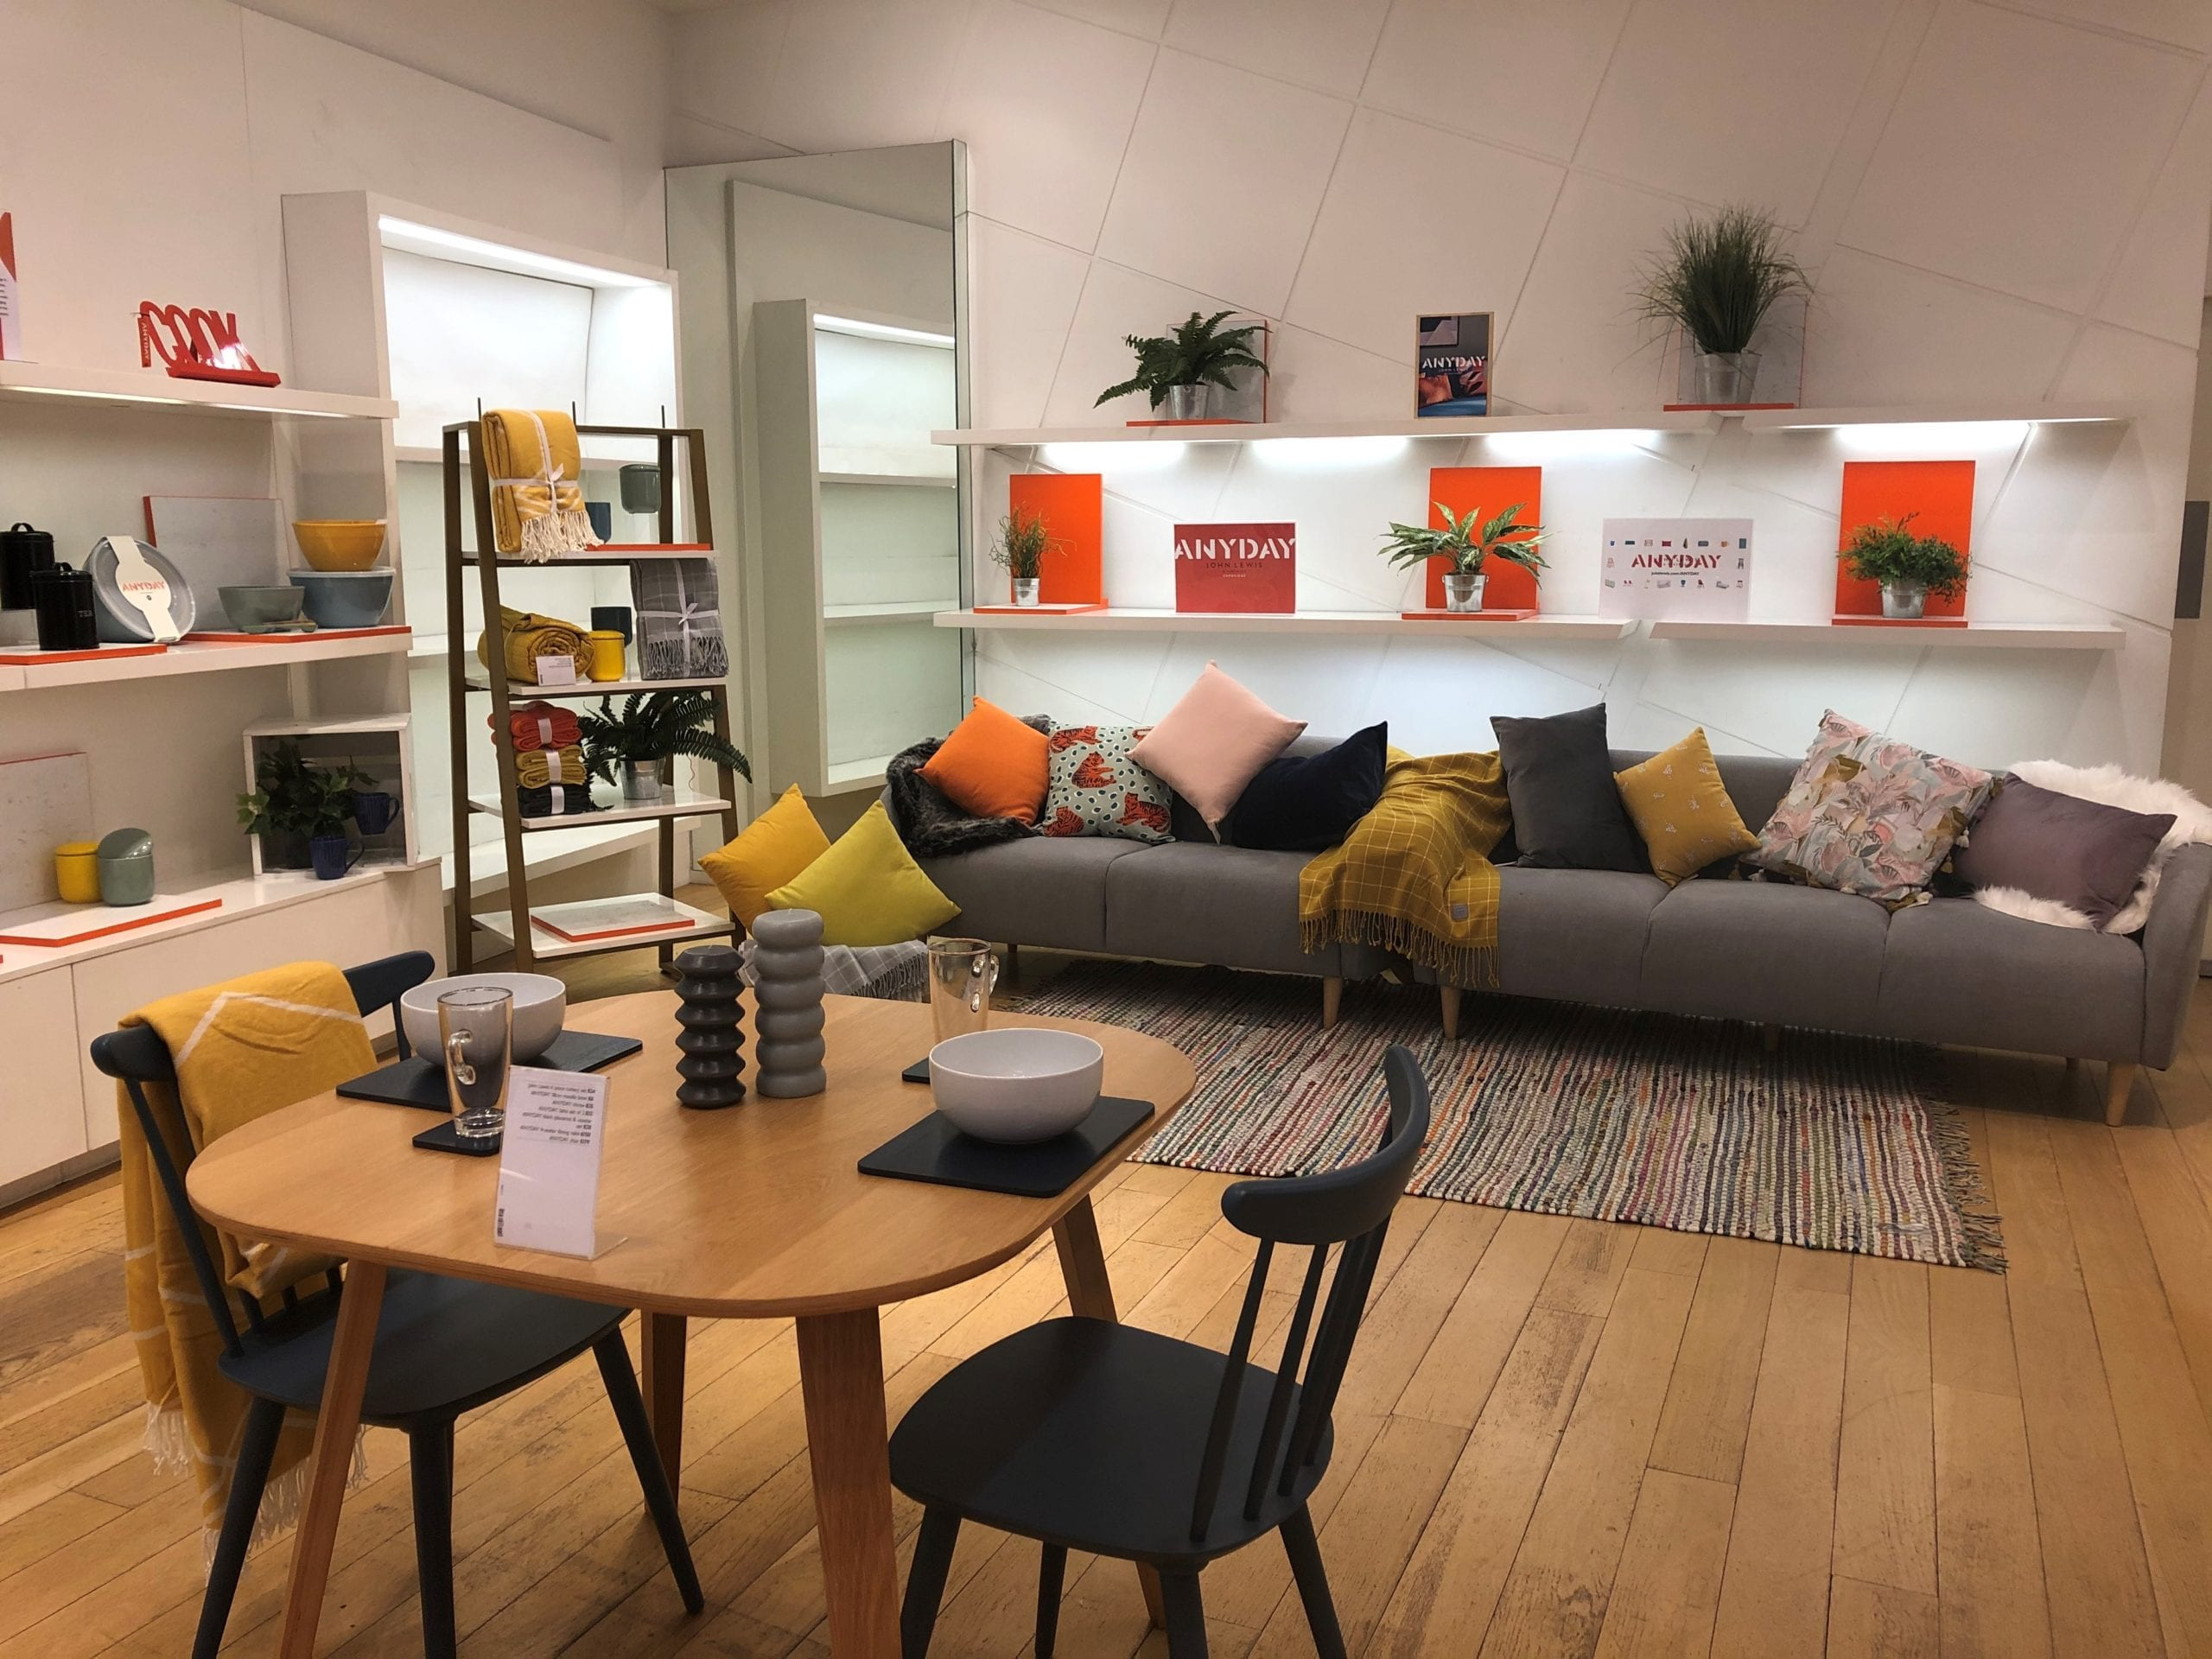 John Lewis & Partners Introduce New 'Anyday' Brand